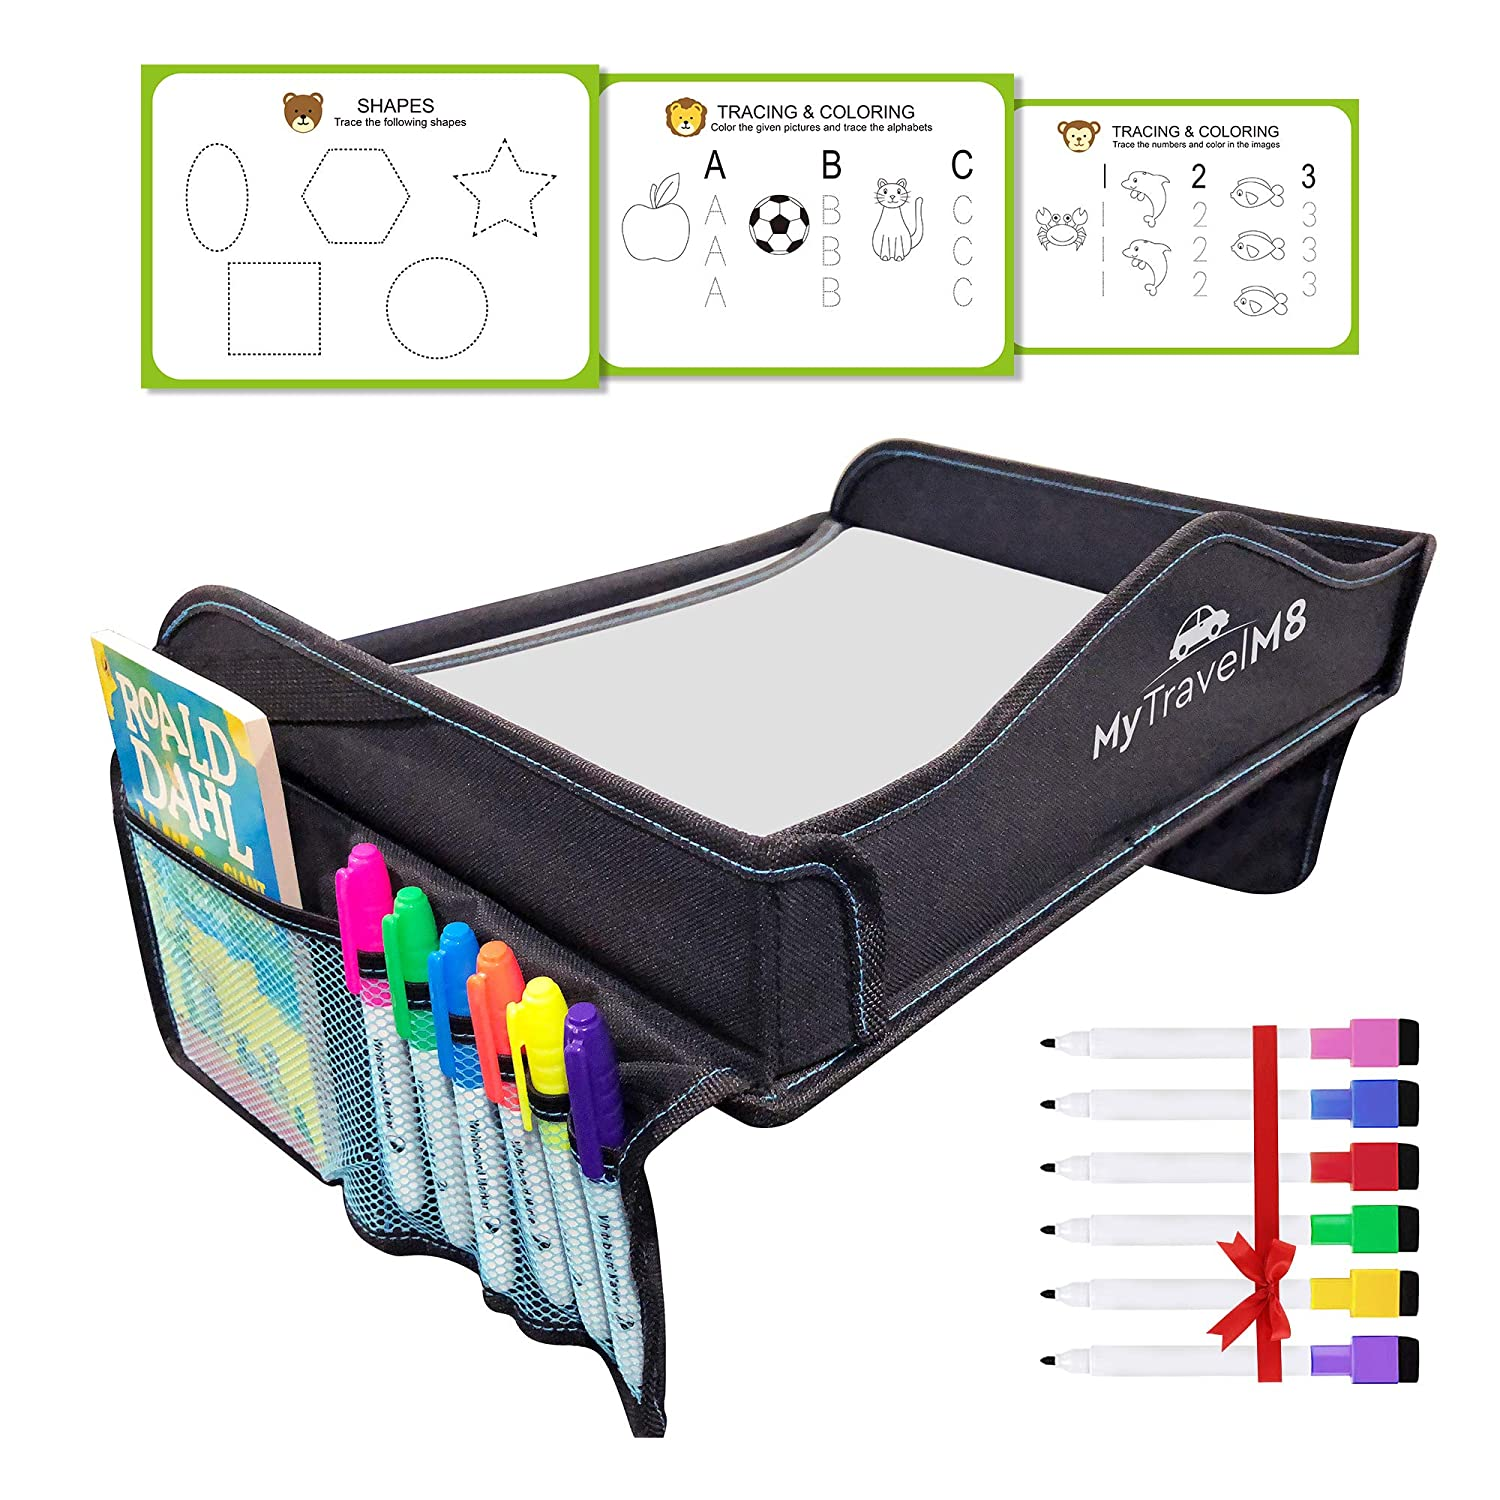 My Travel M8 - Car Seat Tray with Tablet & Cup Holder - Dry Erasable Top - 6 Bonus Markers & 3 Stencils - Kids Travel Tray - Toddler Snack and Play F and N Online